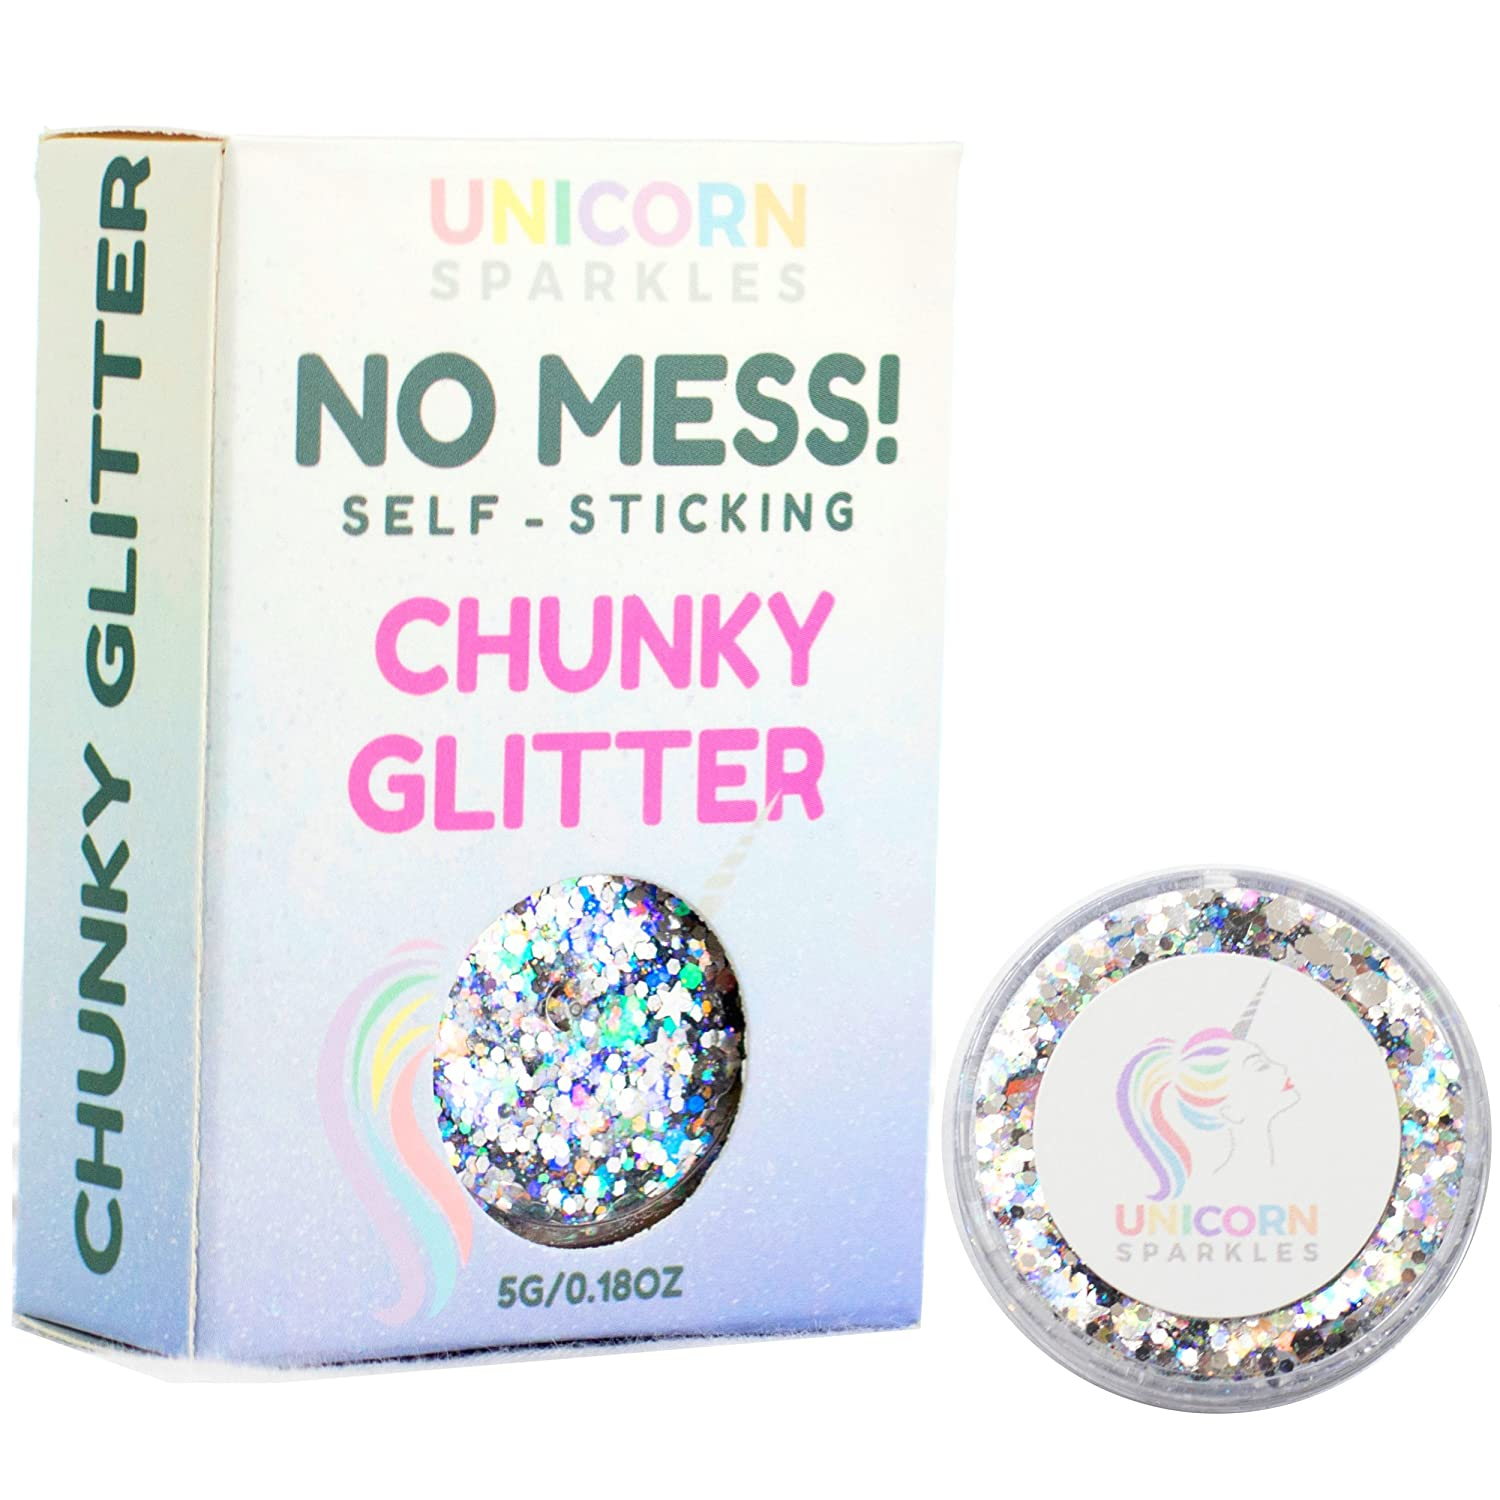 Holographic Silver Cosmetic Chunky Glitter | Self-Sticking, Aloe Vera Based, No Glitter Primer Needed | Cosmetic Glitter for Face & Body | by Unicorn Sparkles | Events, Festival, Party Makeup Heaven Vibes